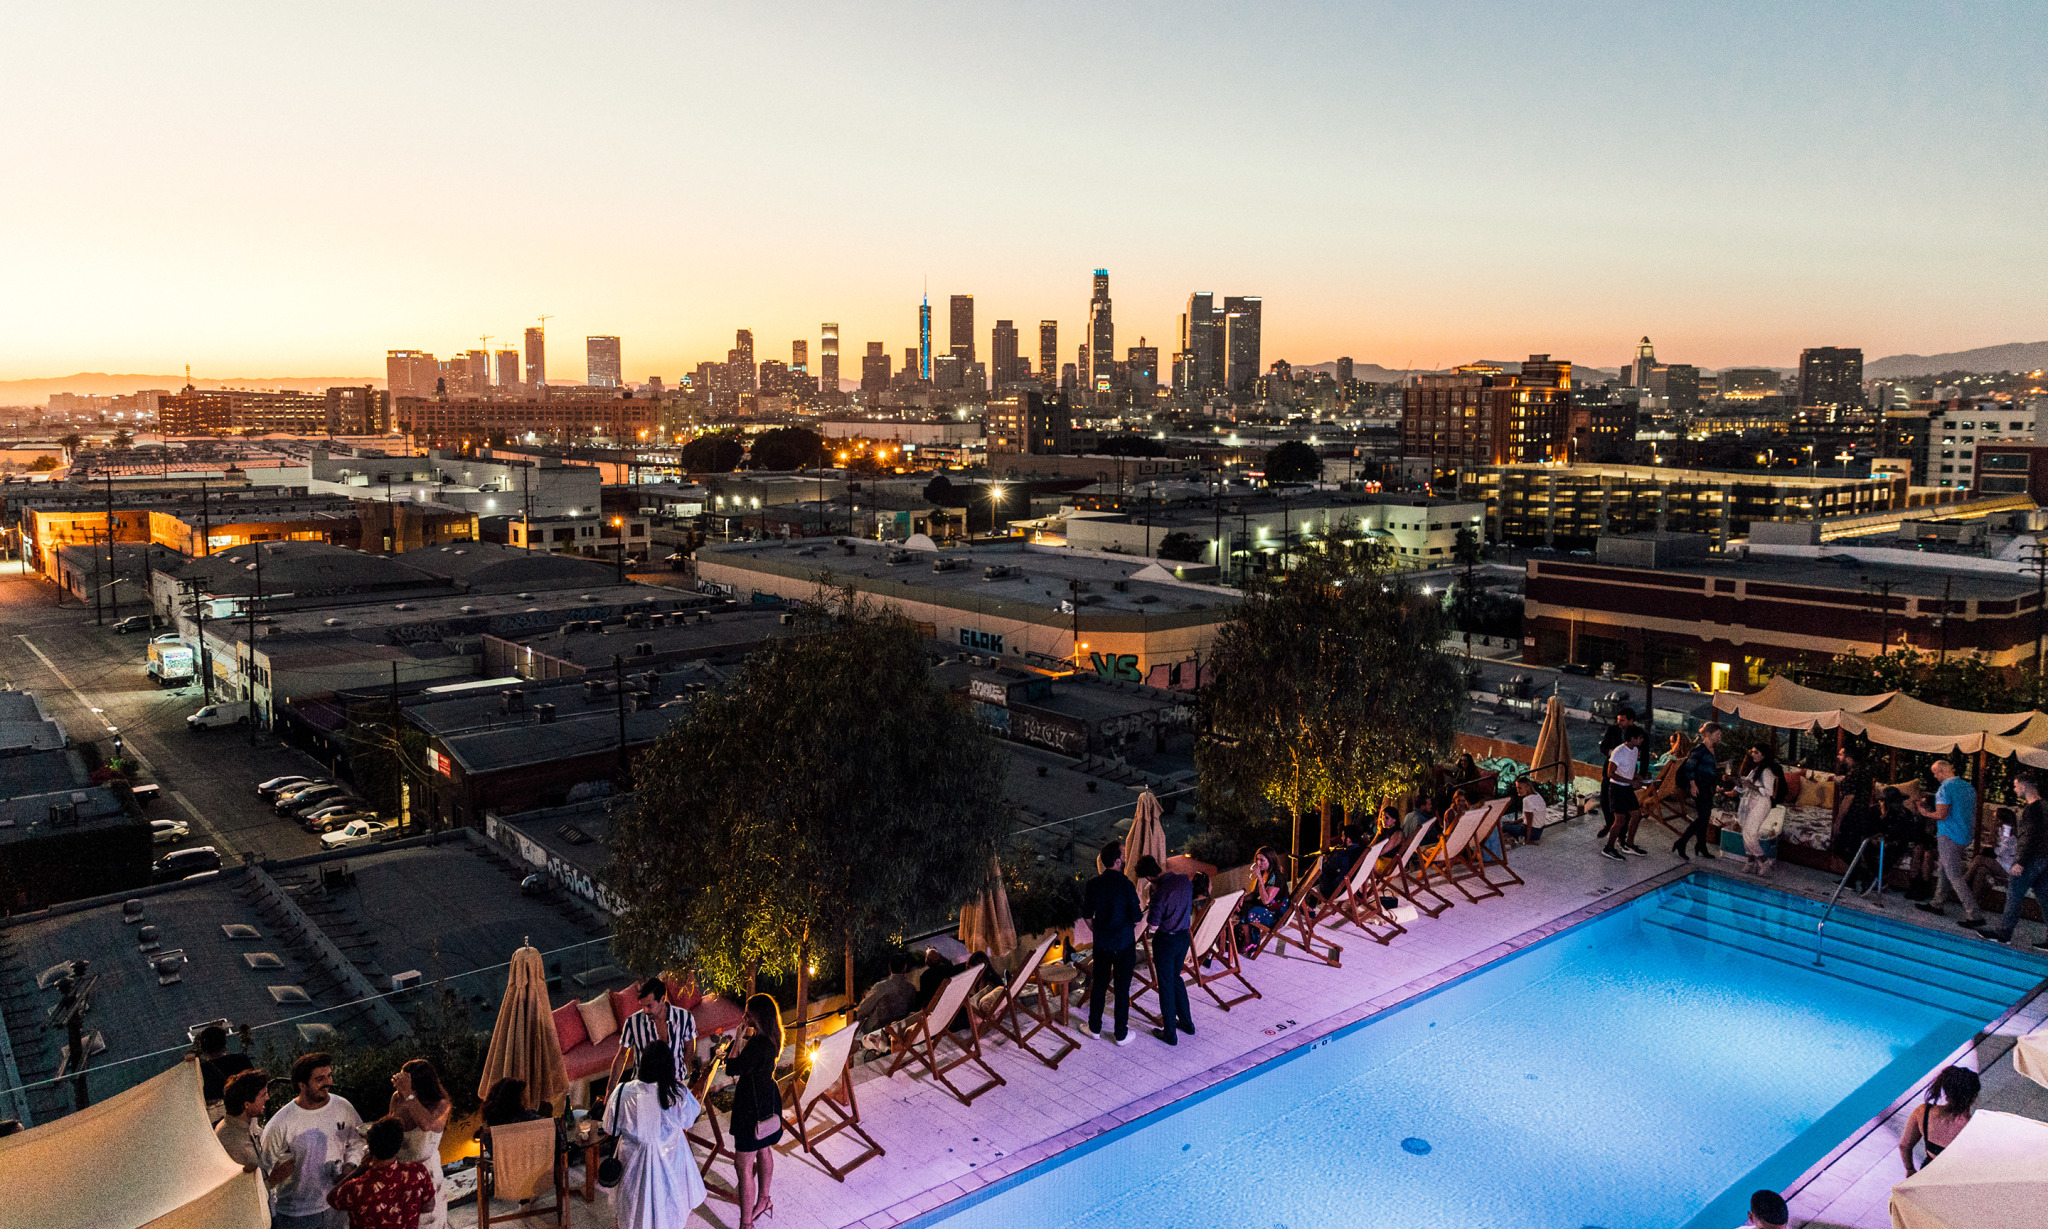 People standing around a rooftop pool at sunset with a city in the background.